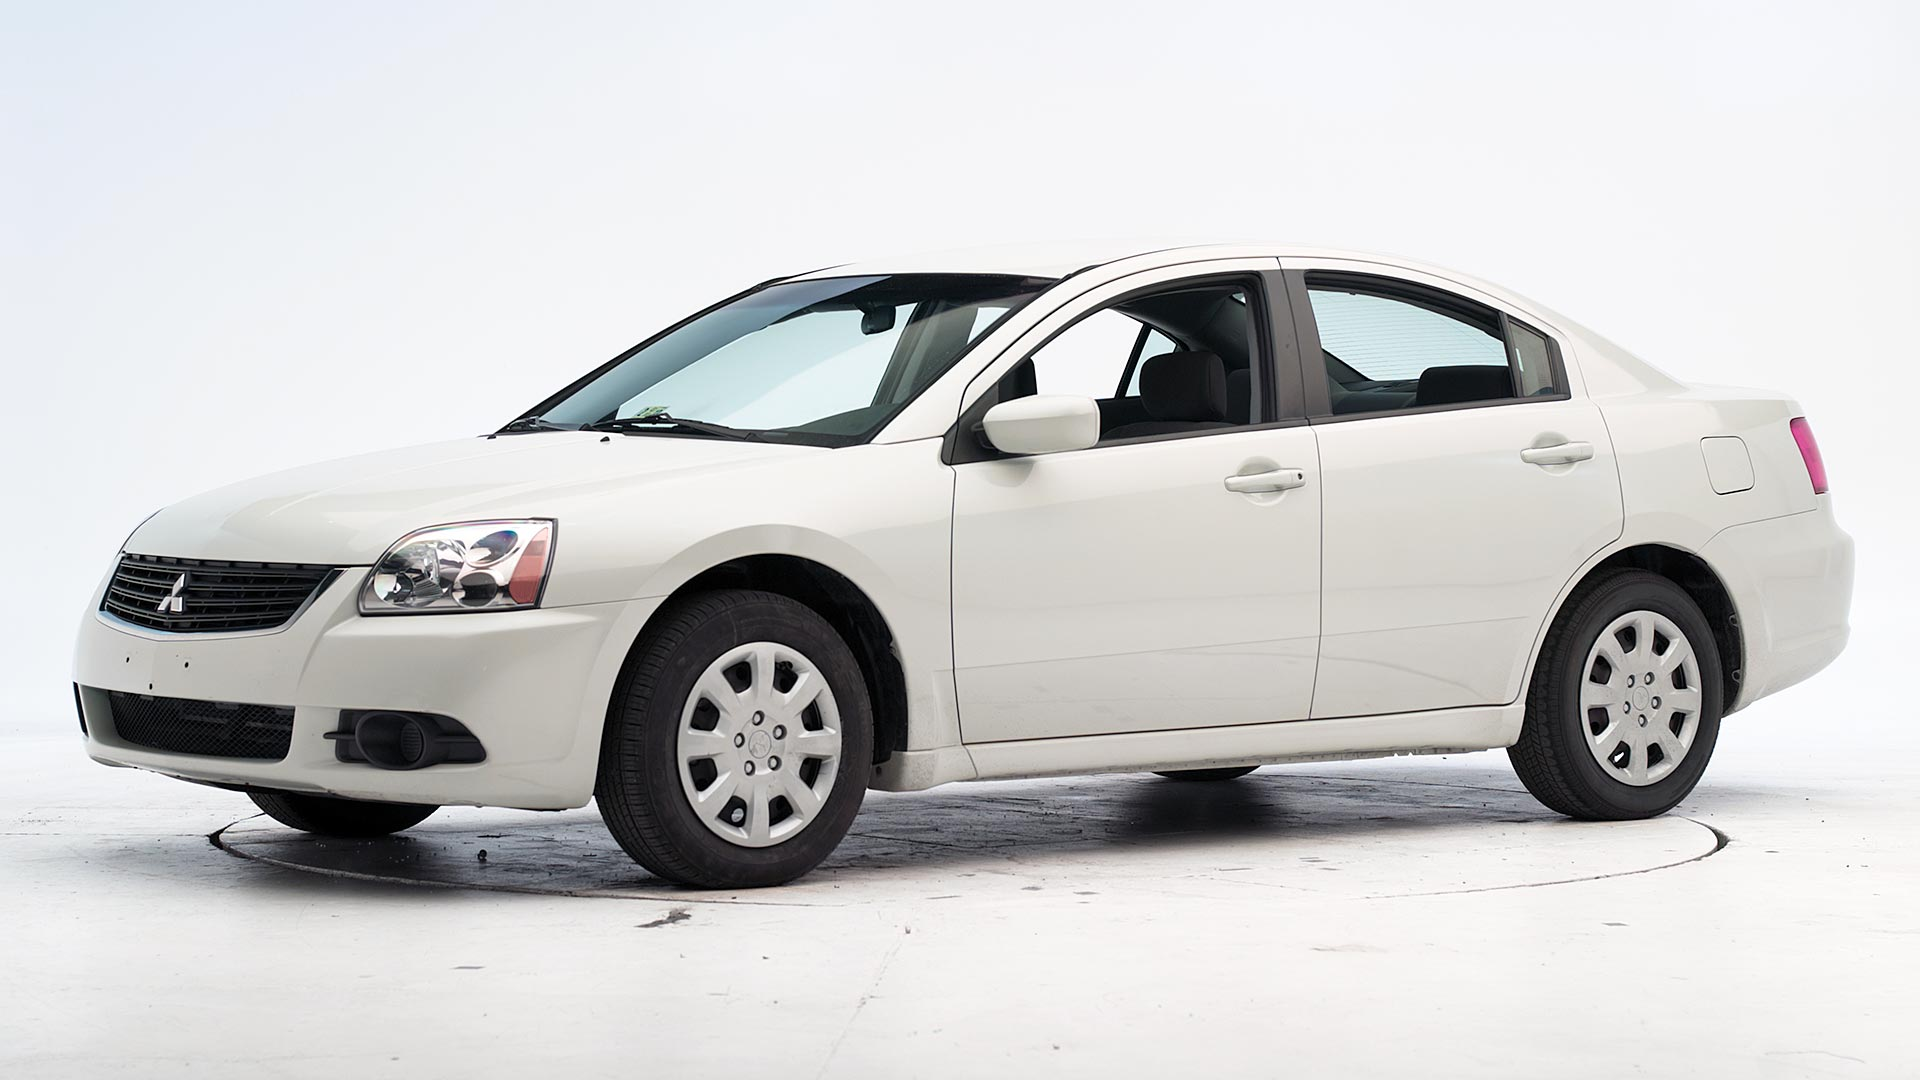 2011 Mitsubishi Galant 4-door sedan